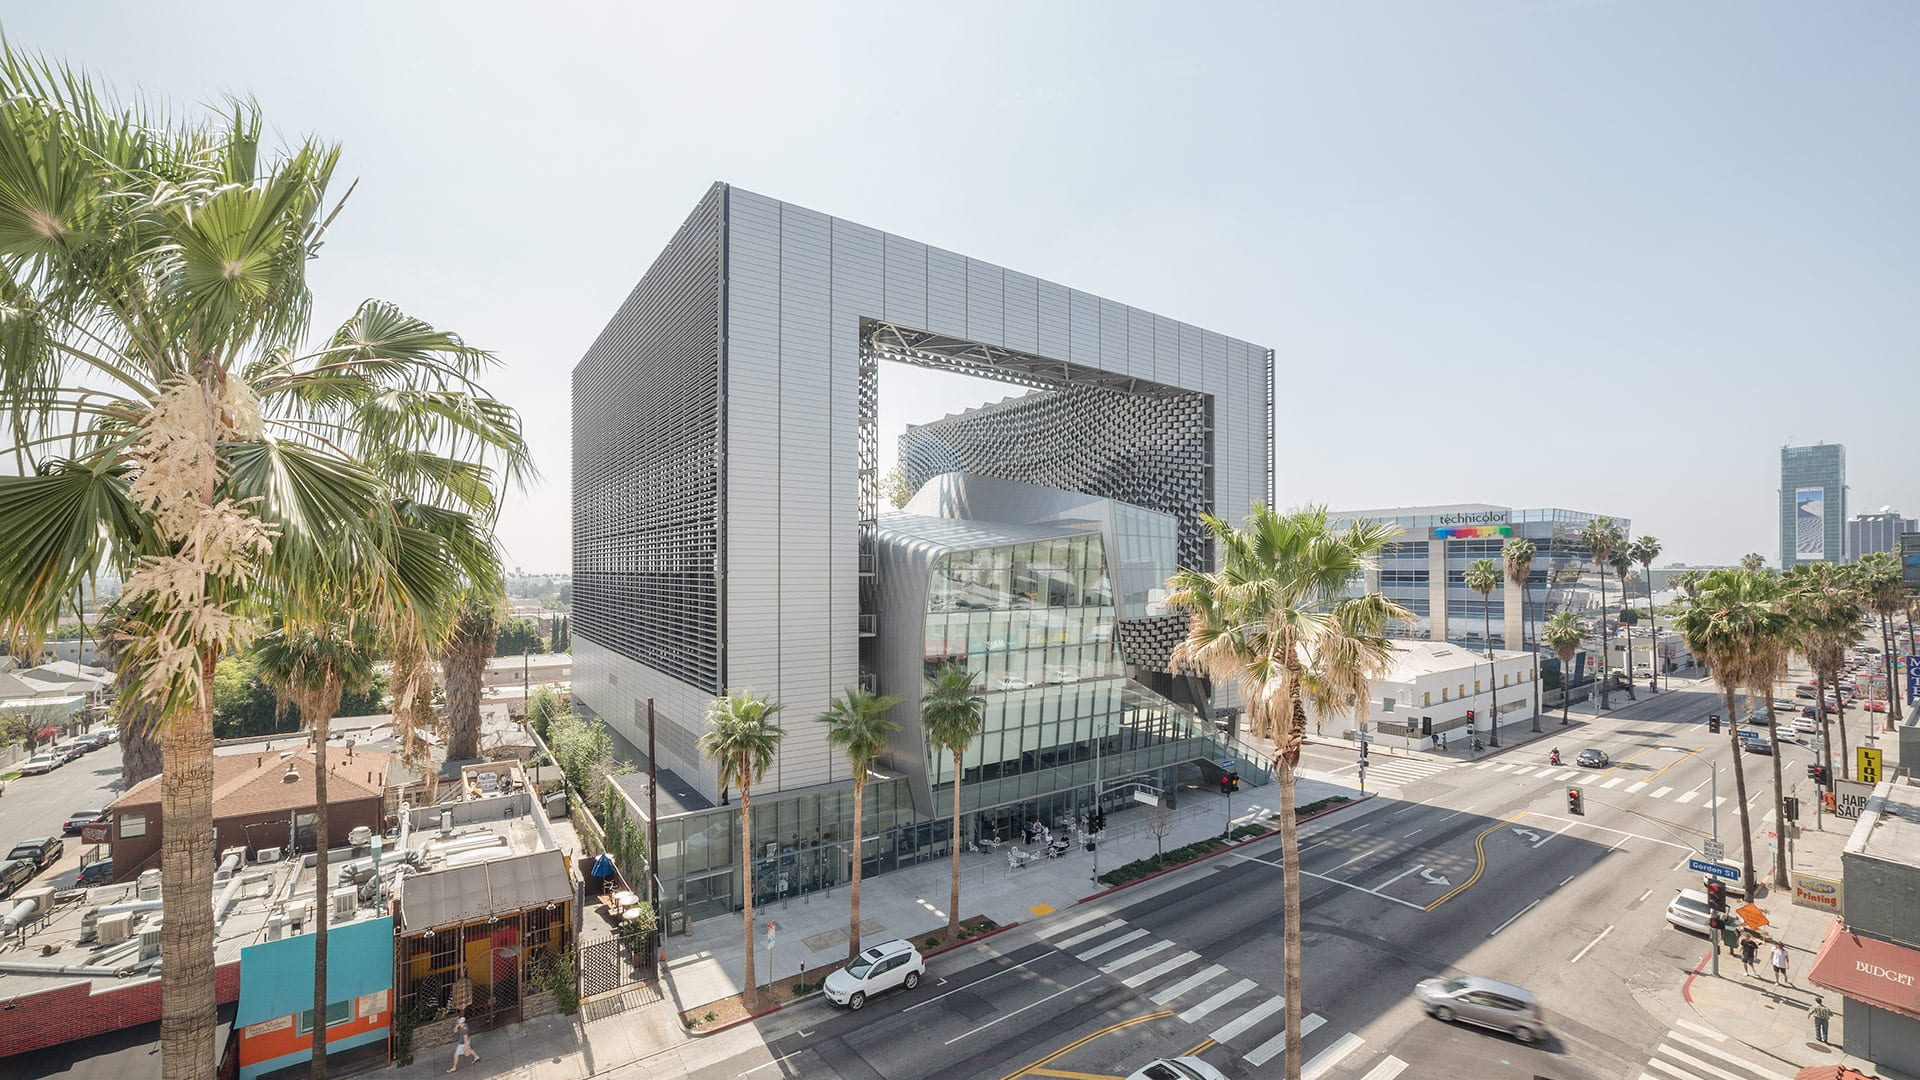 View of Emerson College at Los Angeles from across Sunset Boulevard.